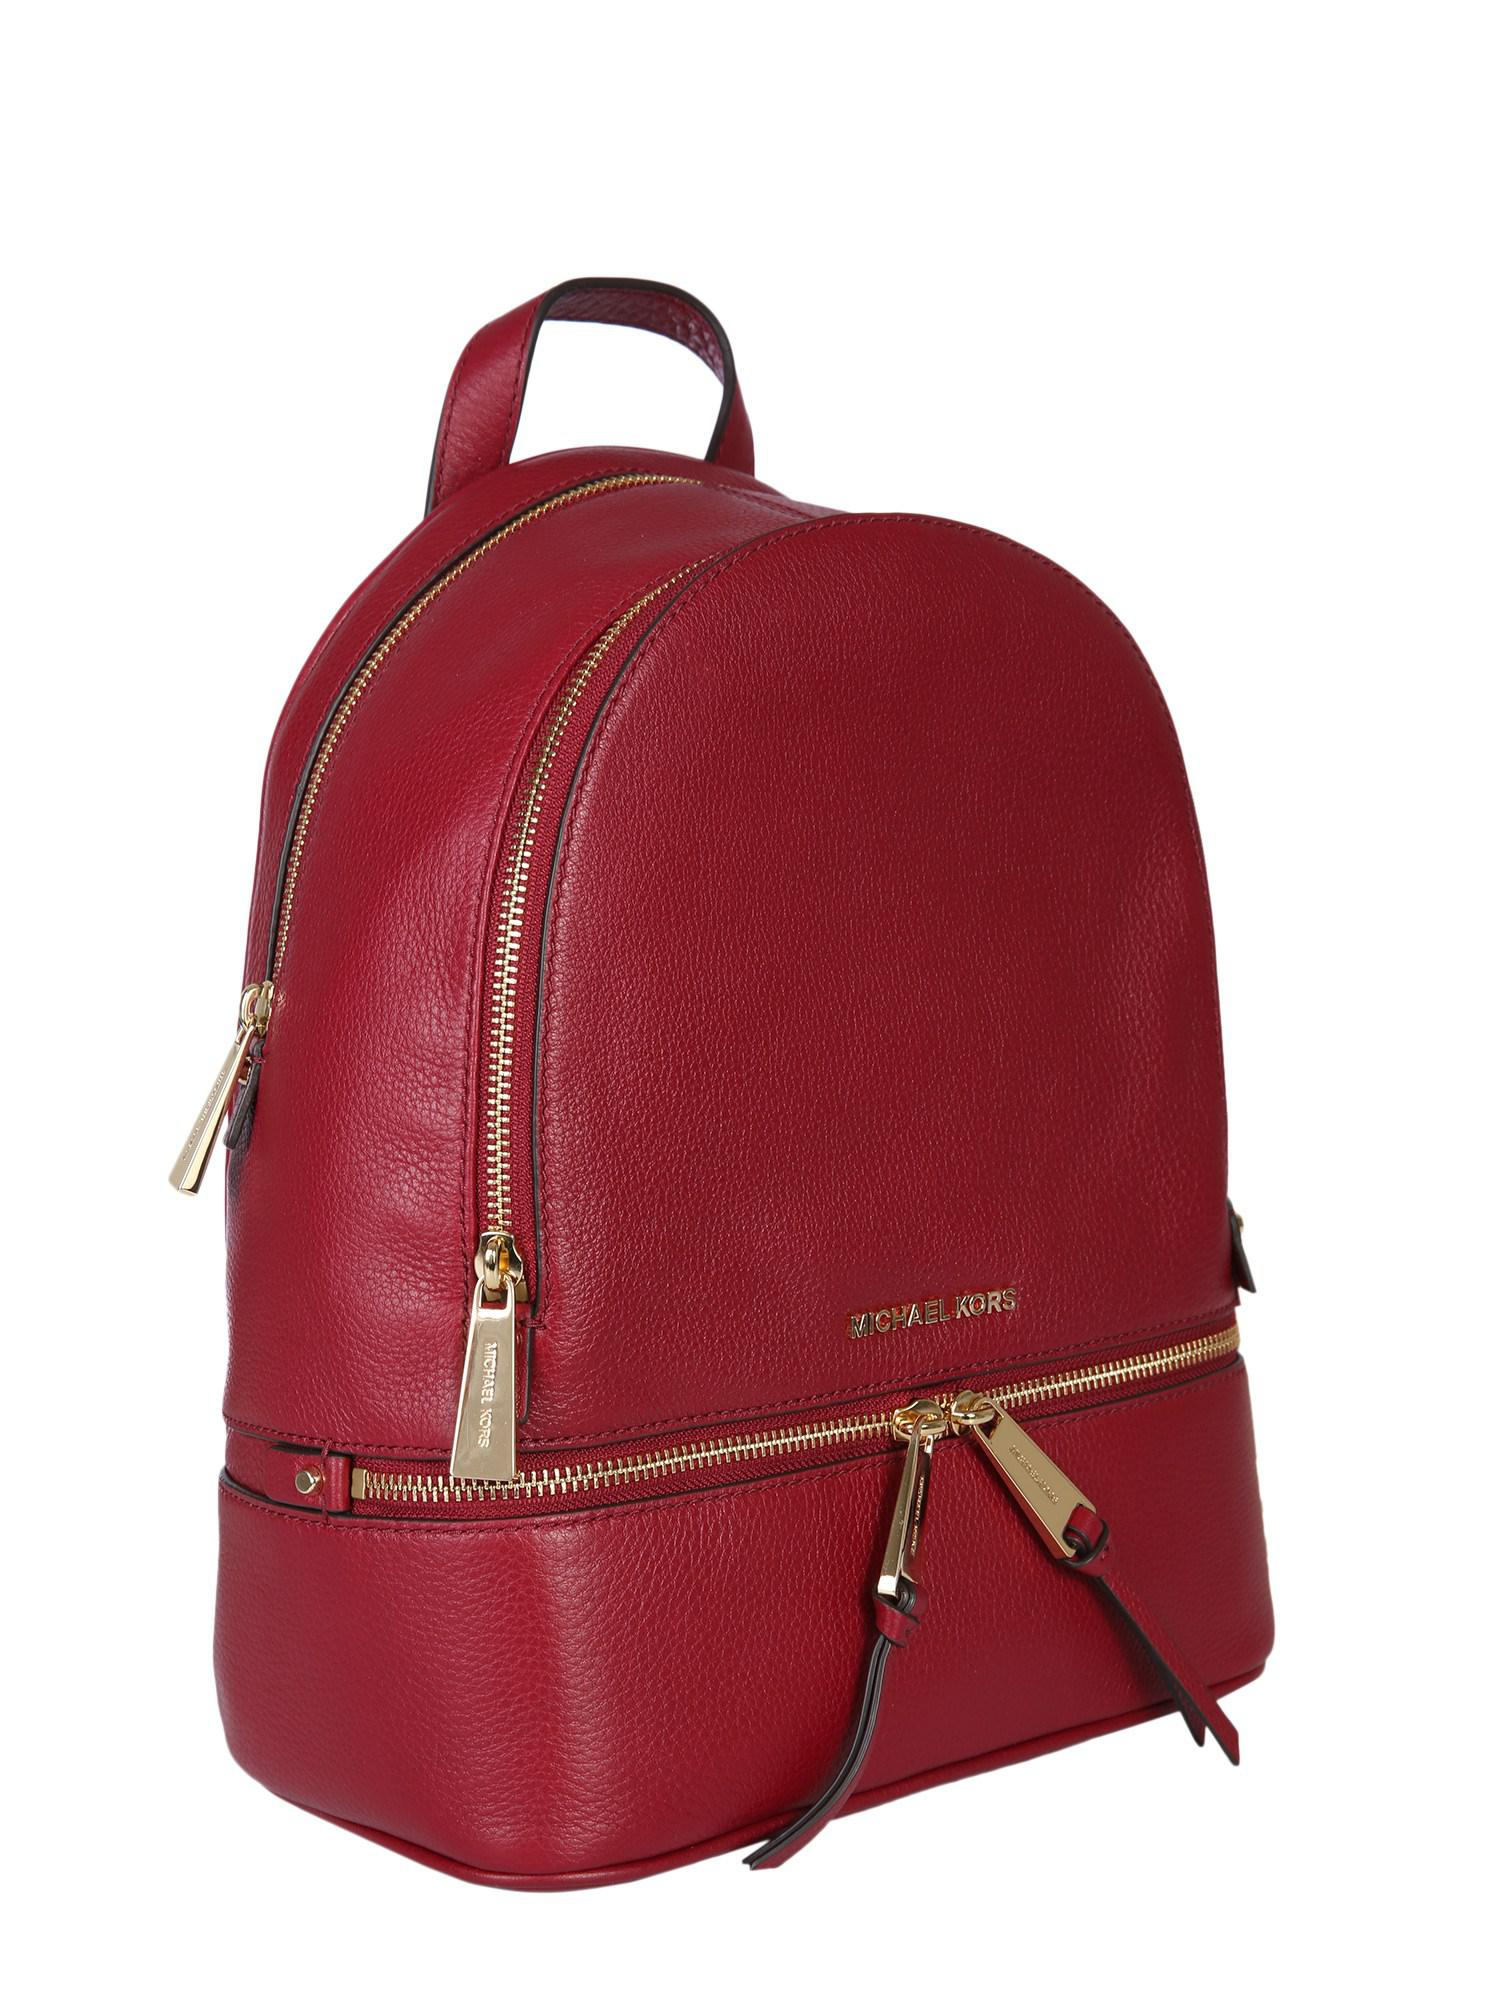 c12abf7ec60c ... studded backpack in red lyst d2908 f89f7; spain michael michael kors red  medium rhea zip backpack in leather lyst. view fullscreen 589f8